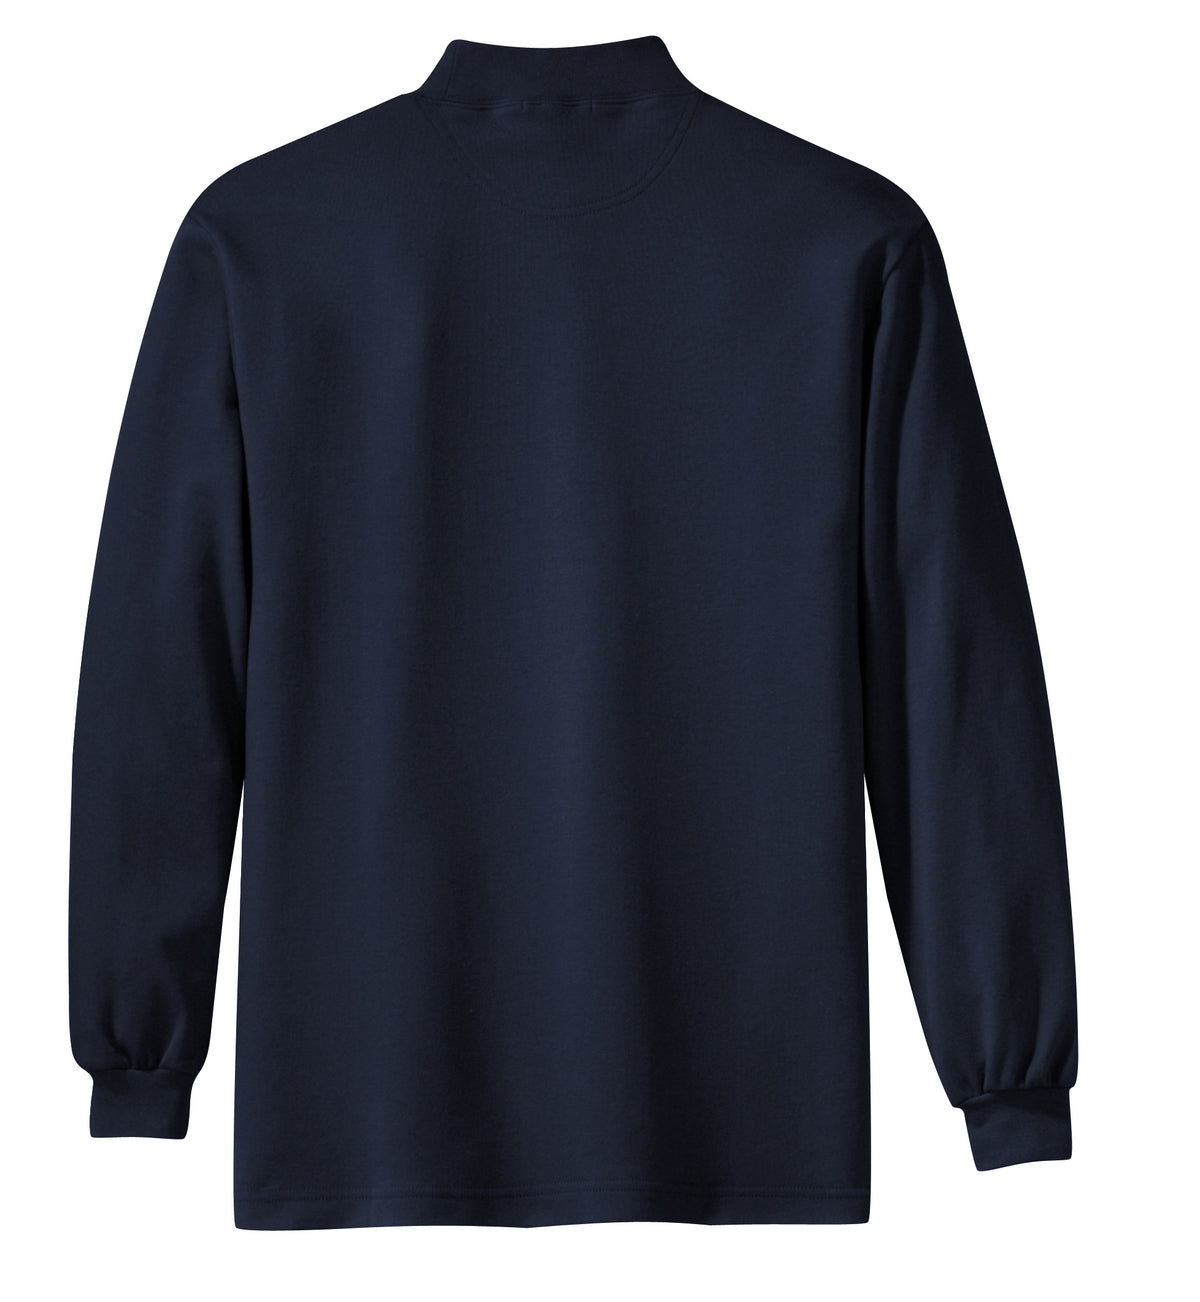 Mafoose Men's Interlock Knit Mock Turtleneck Sweaters Navy-Back